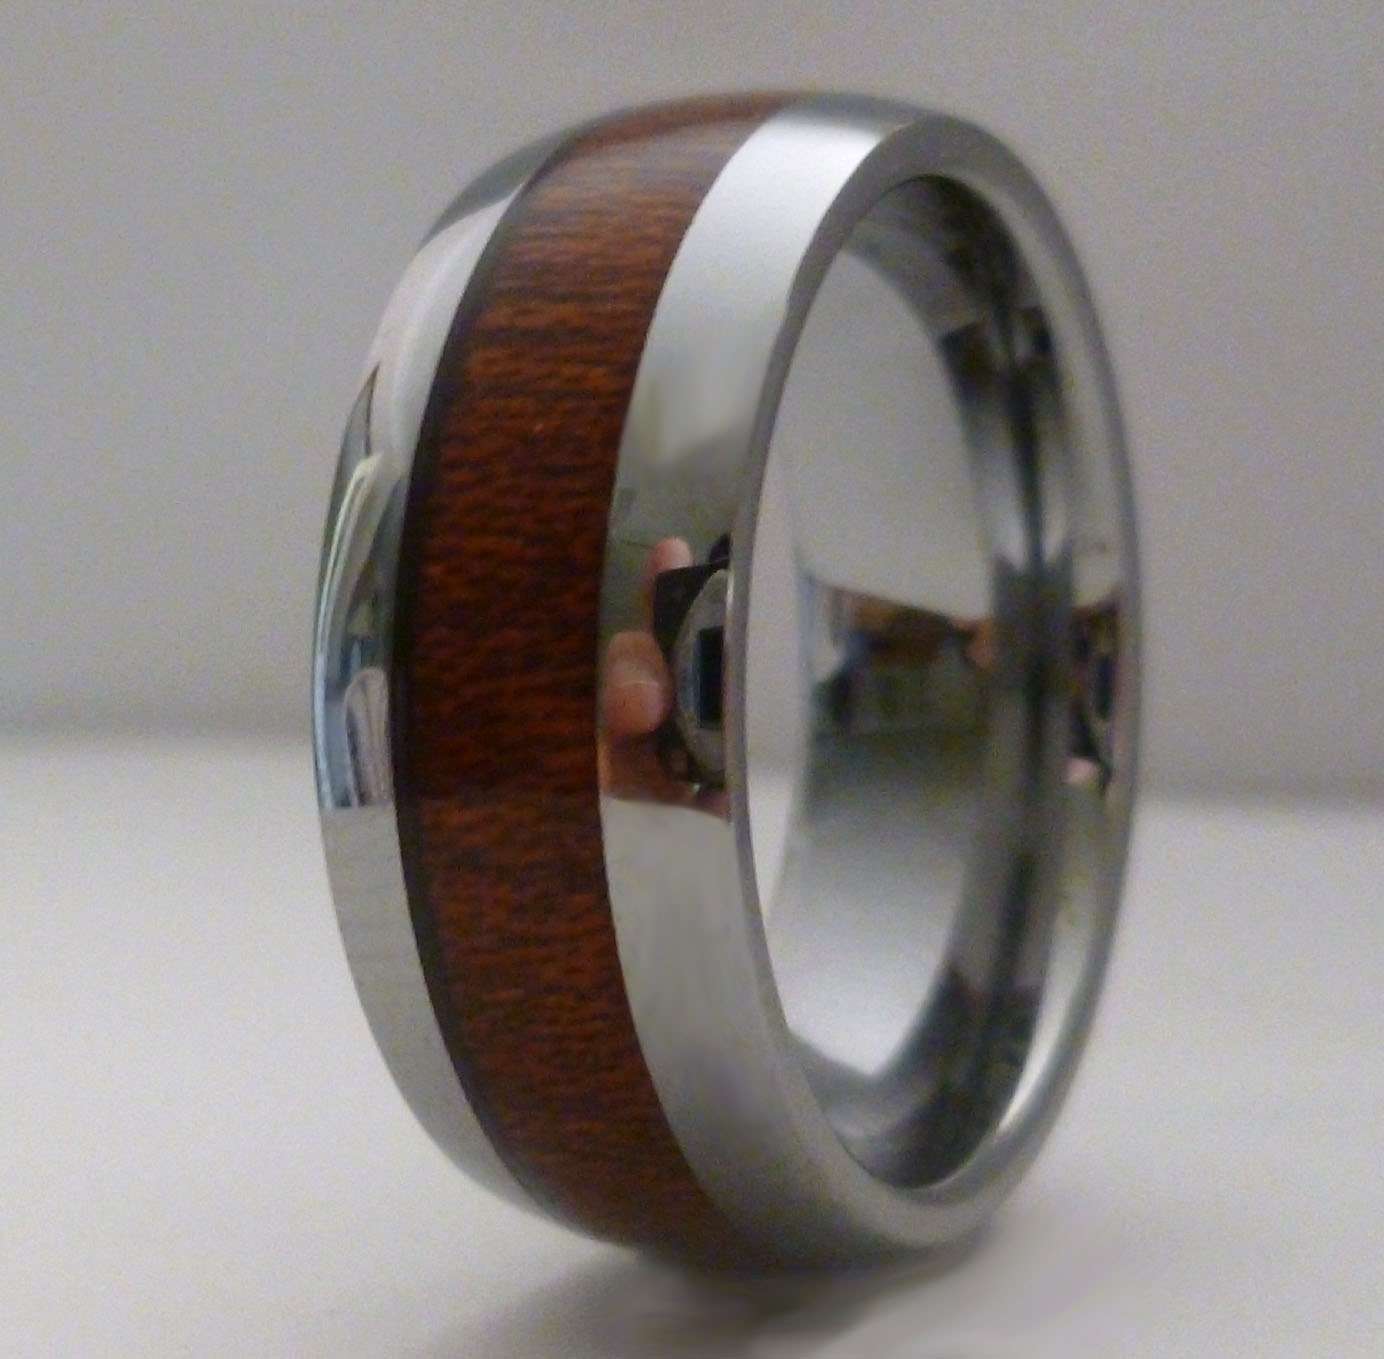 Male Wedding Bands Wood Inlay: Tungsten Ring Wood Inlay Wedding Band Mens Wood By GTJewellers